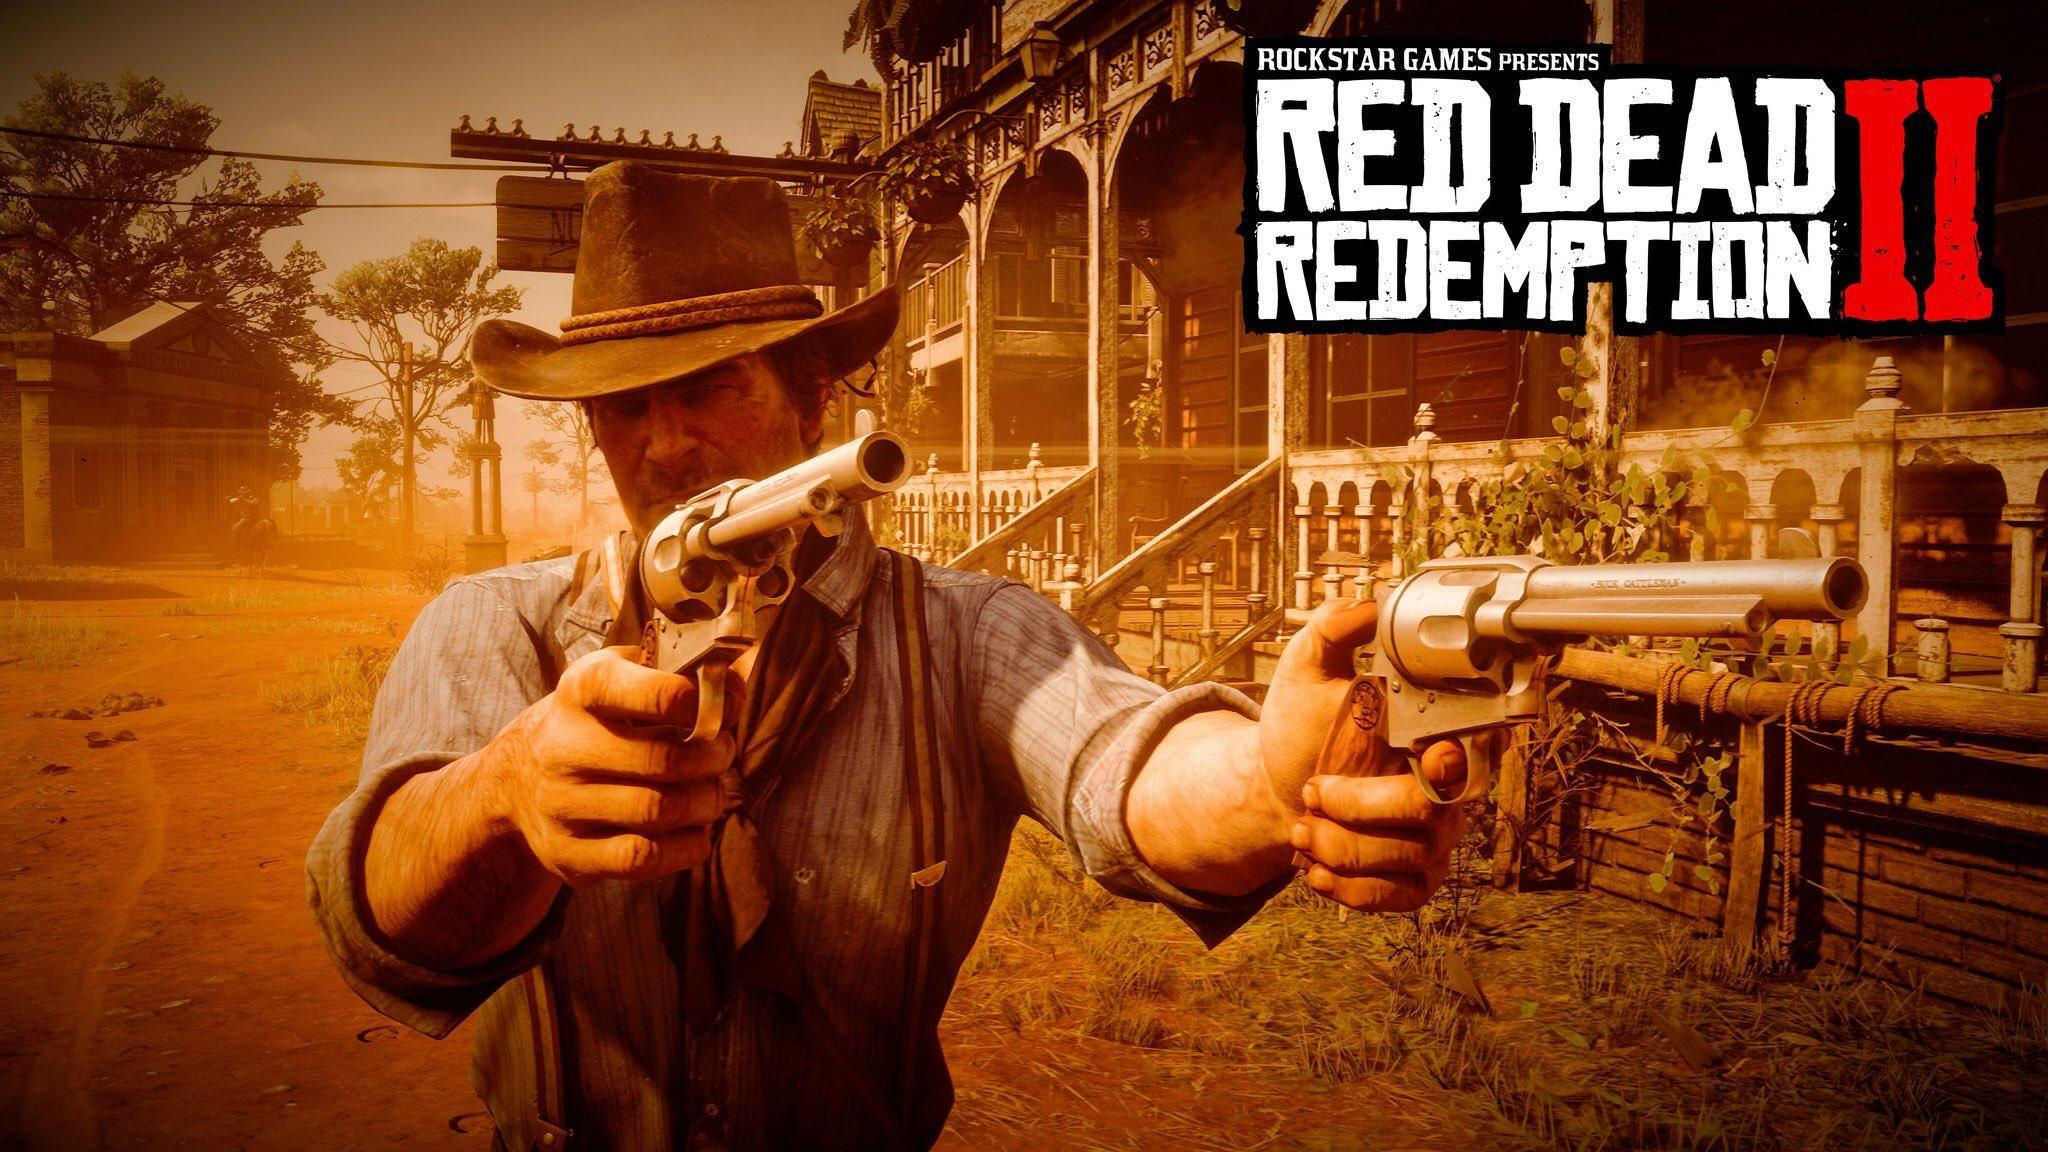 Here is the Red Dead Redemption 2 Gameplay Trailer Part 2!